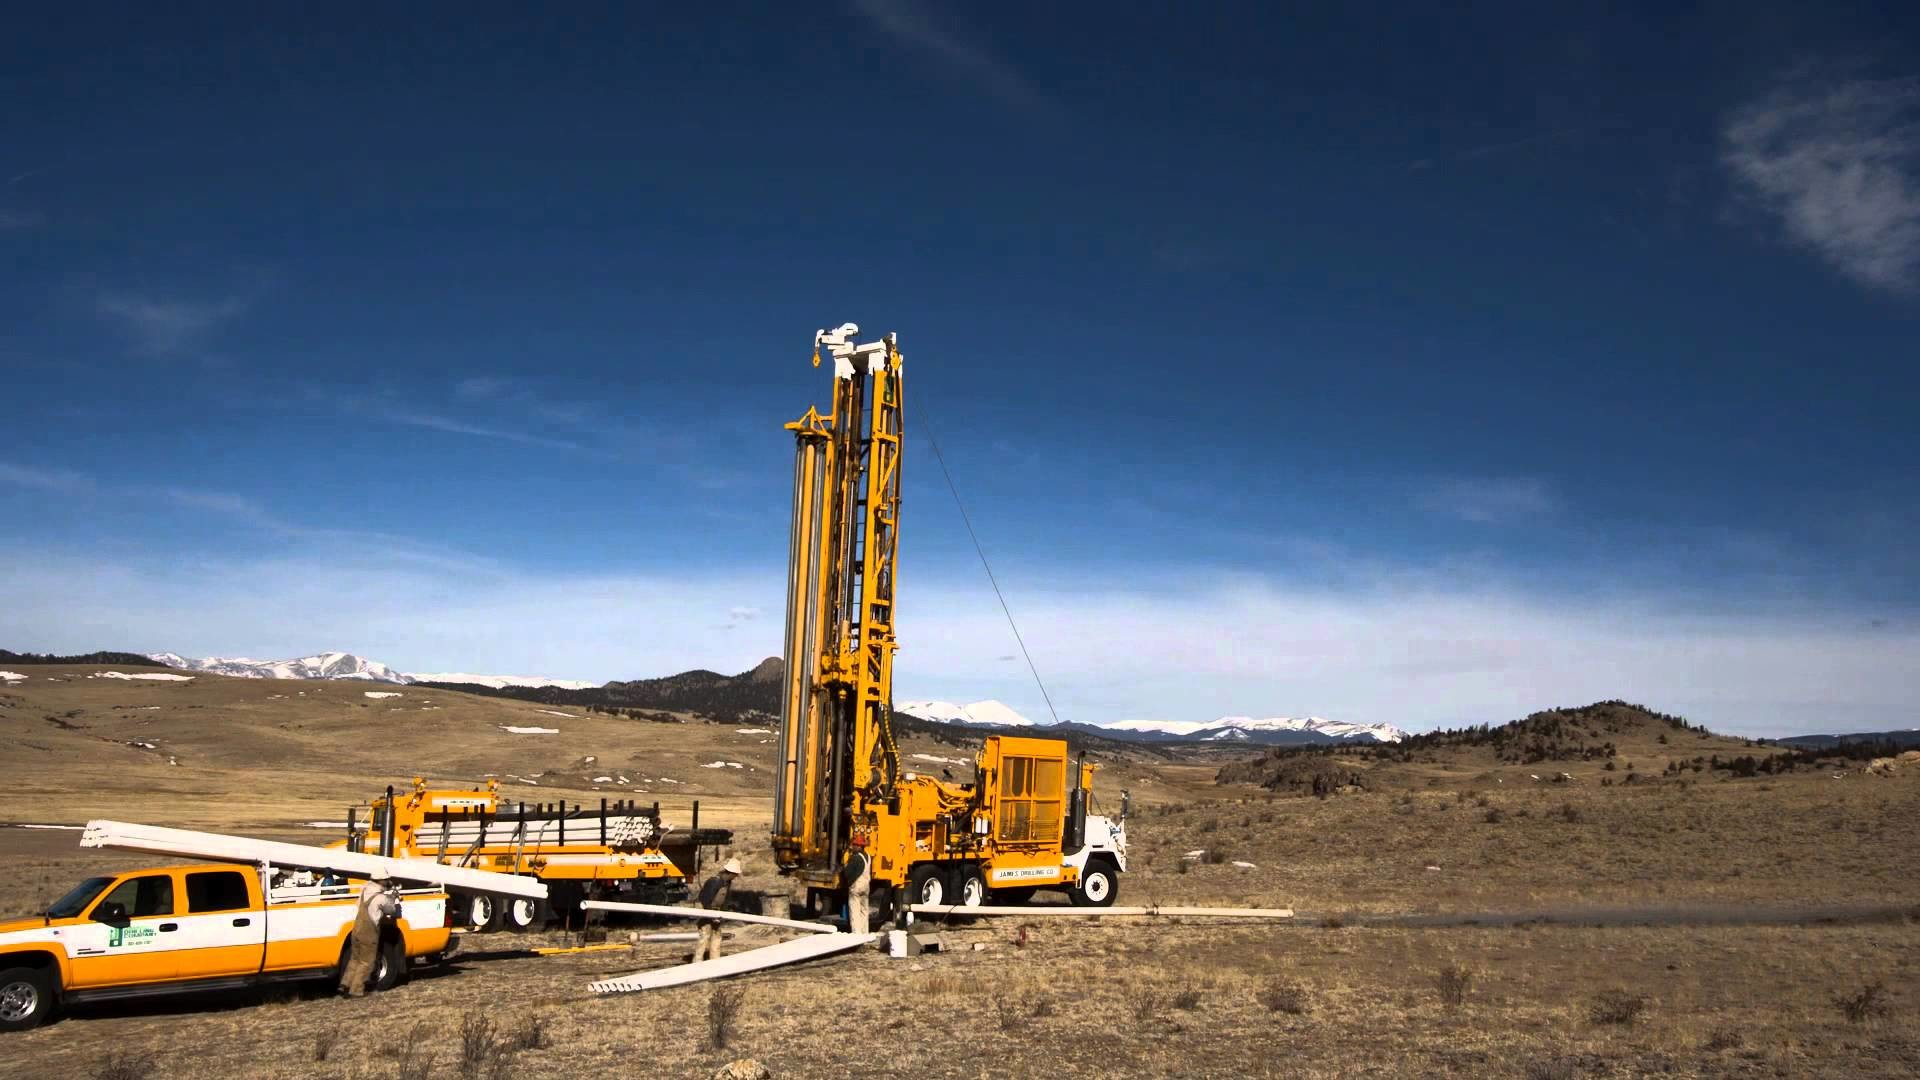 1920x1080 Incredible Time-Lapse of Water Well Drilling near South Park, CO - YouTube